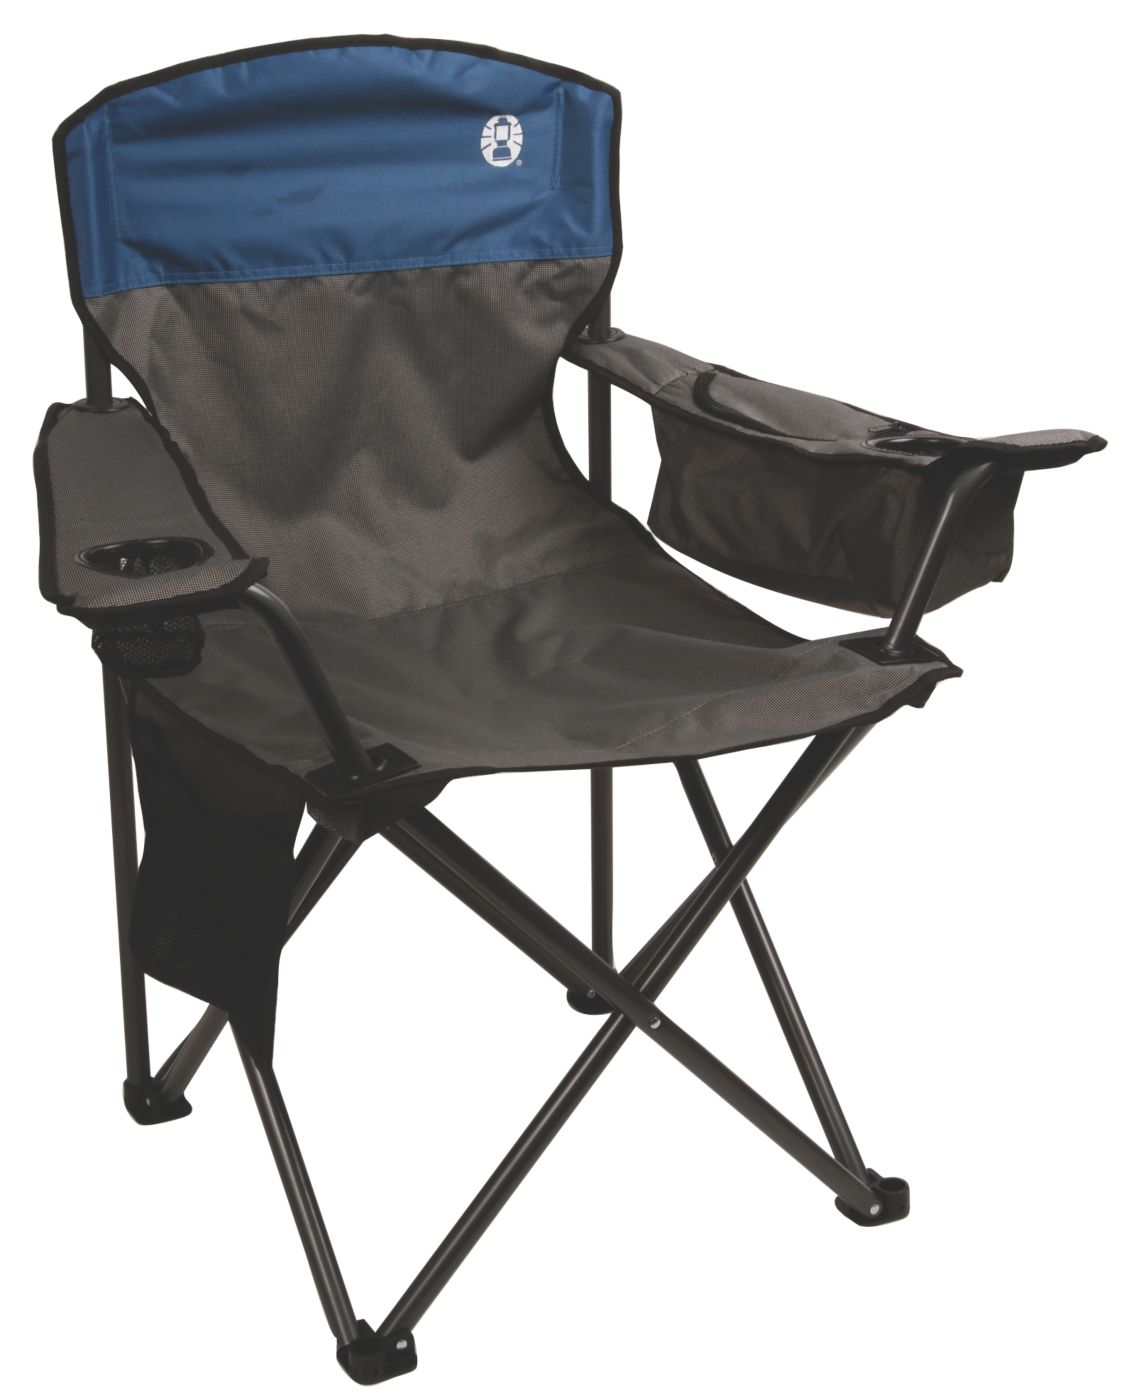 coleman oversized quad chair with cooler pouch sleepy hollow furniture and games